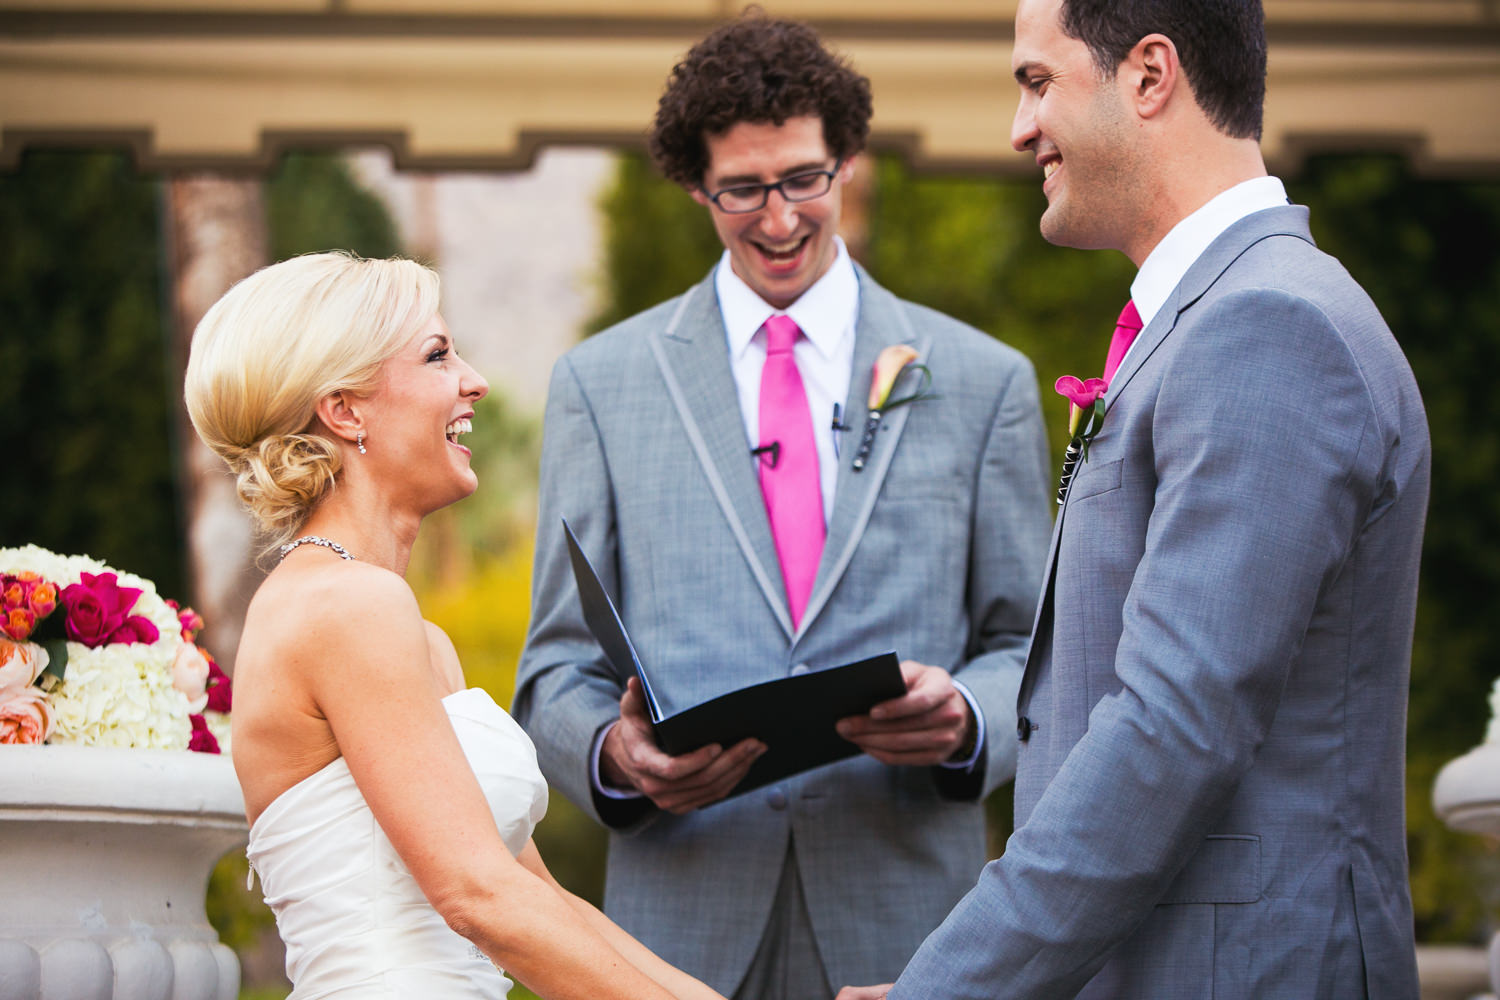 Avalon Palm Springs Photographer - Laughing Bride and Groom